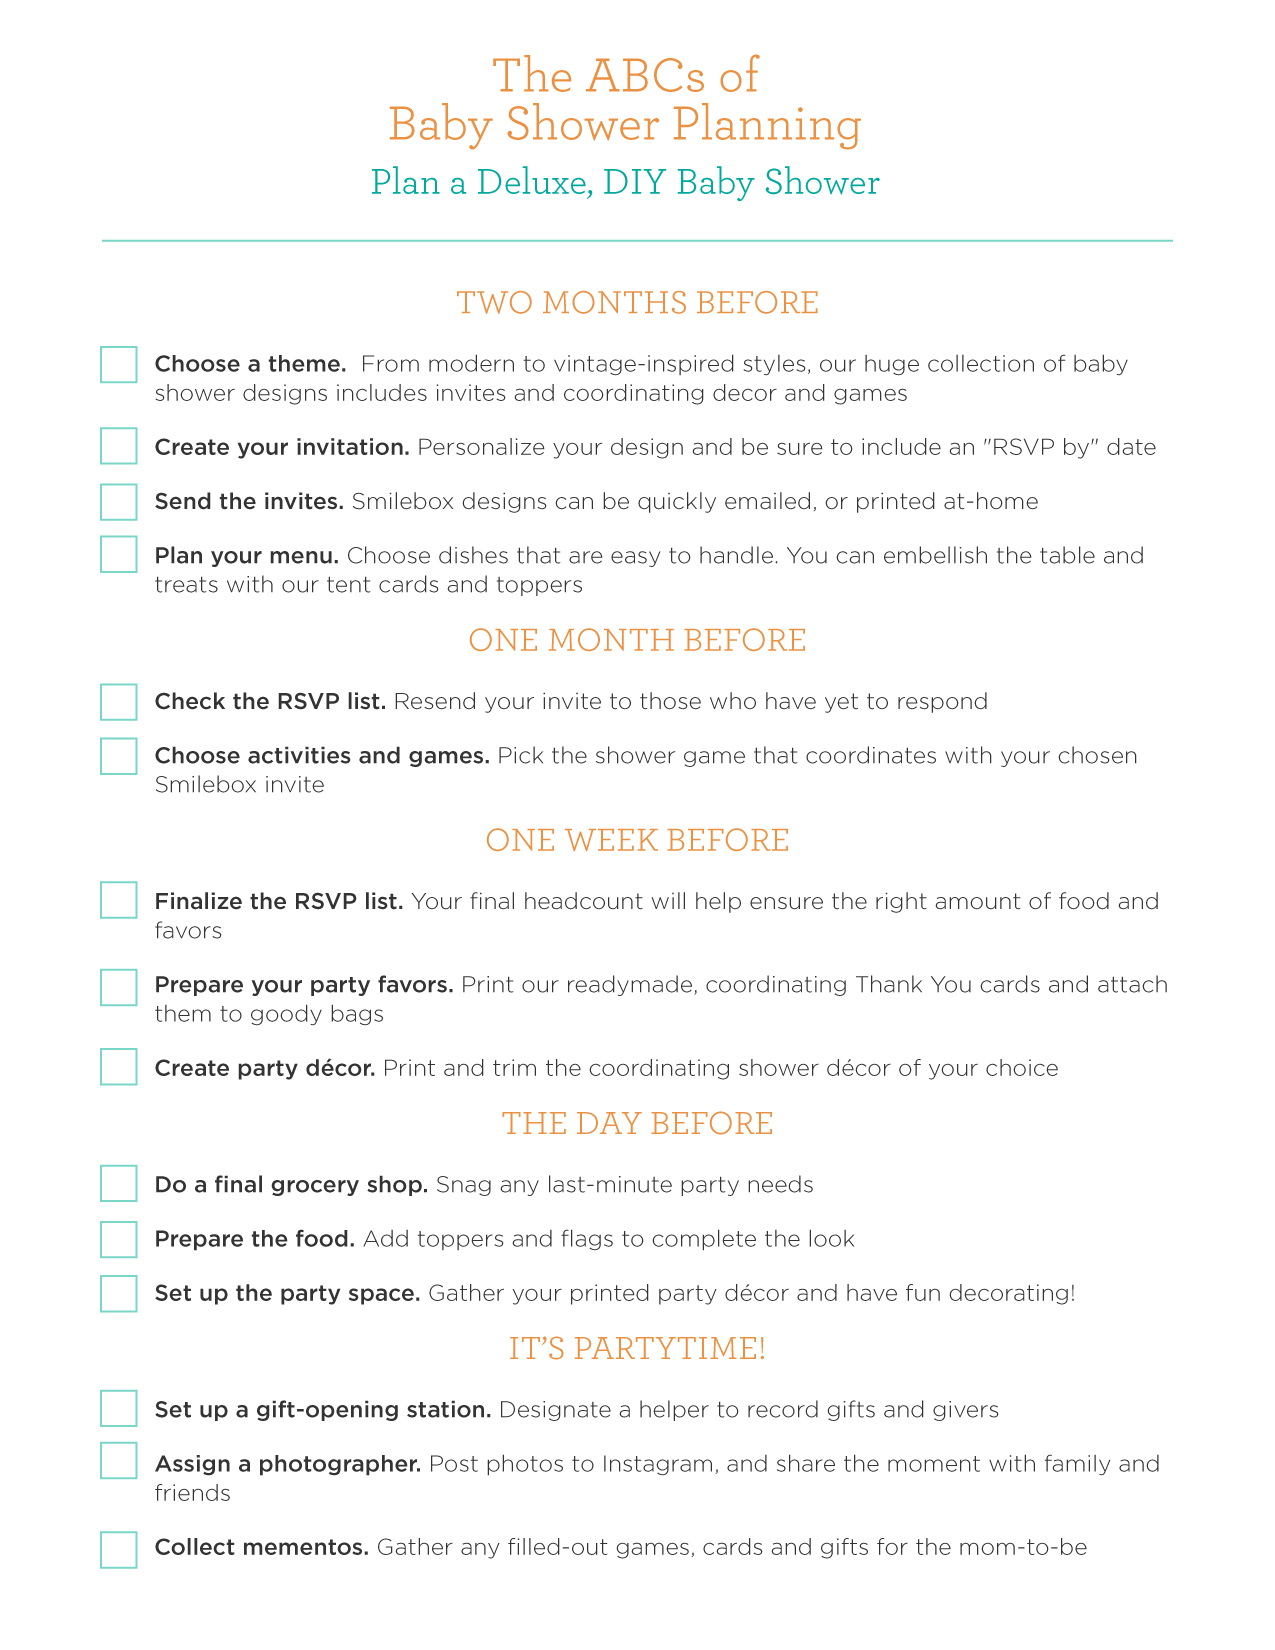 24 Helpful Baby Shower Checklists